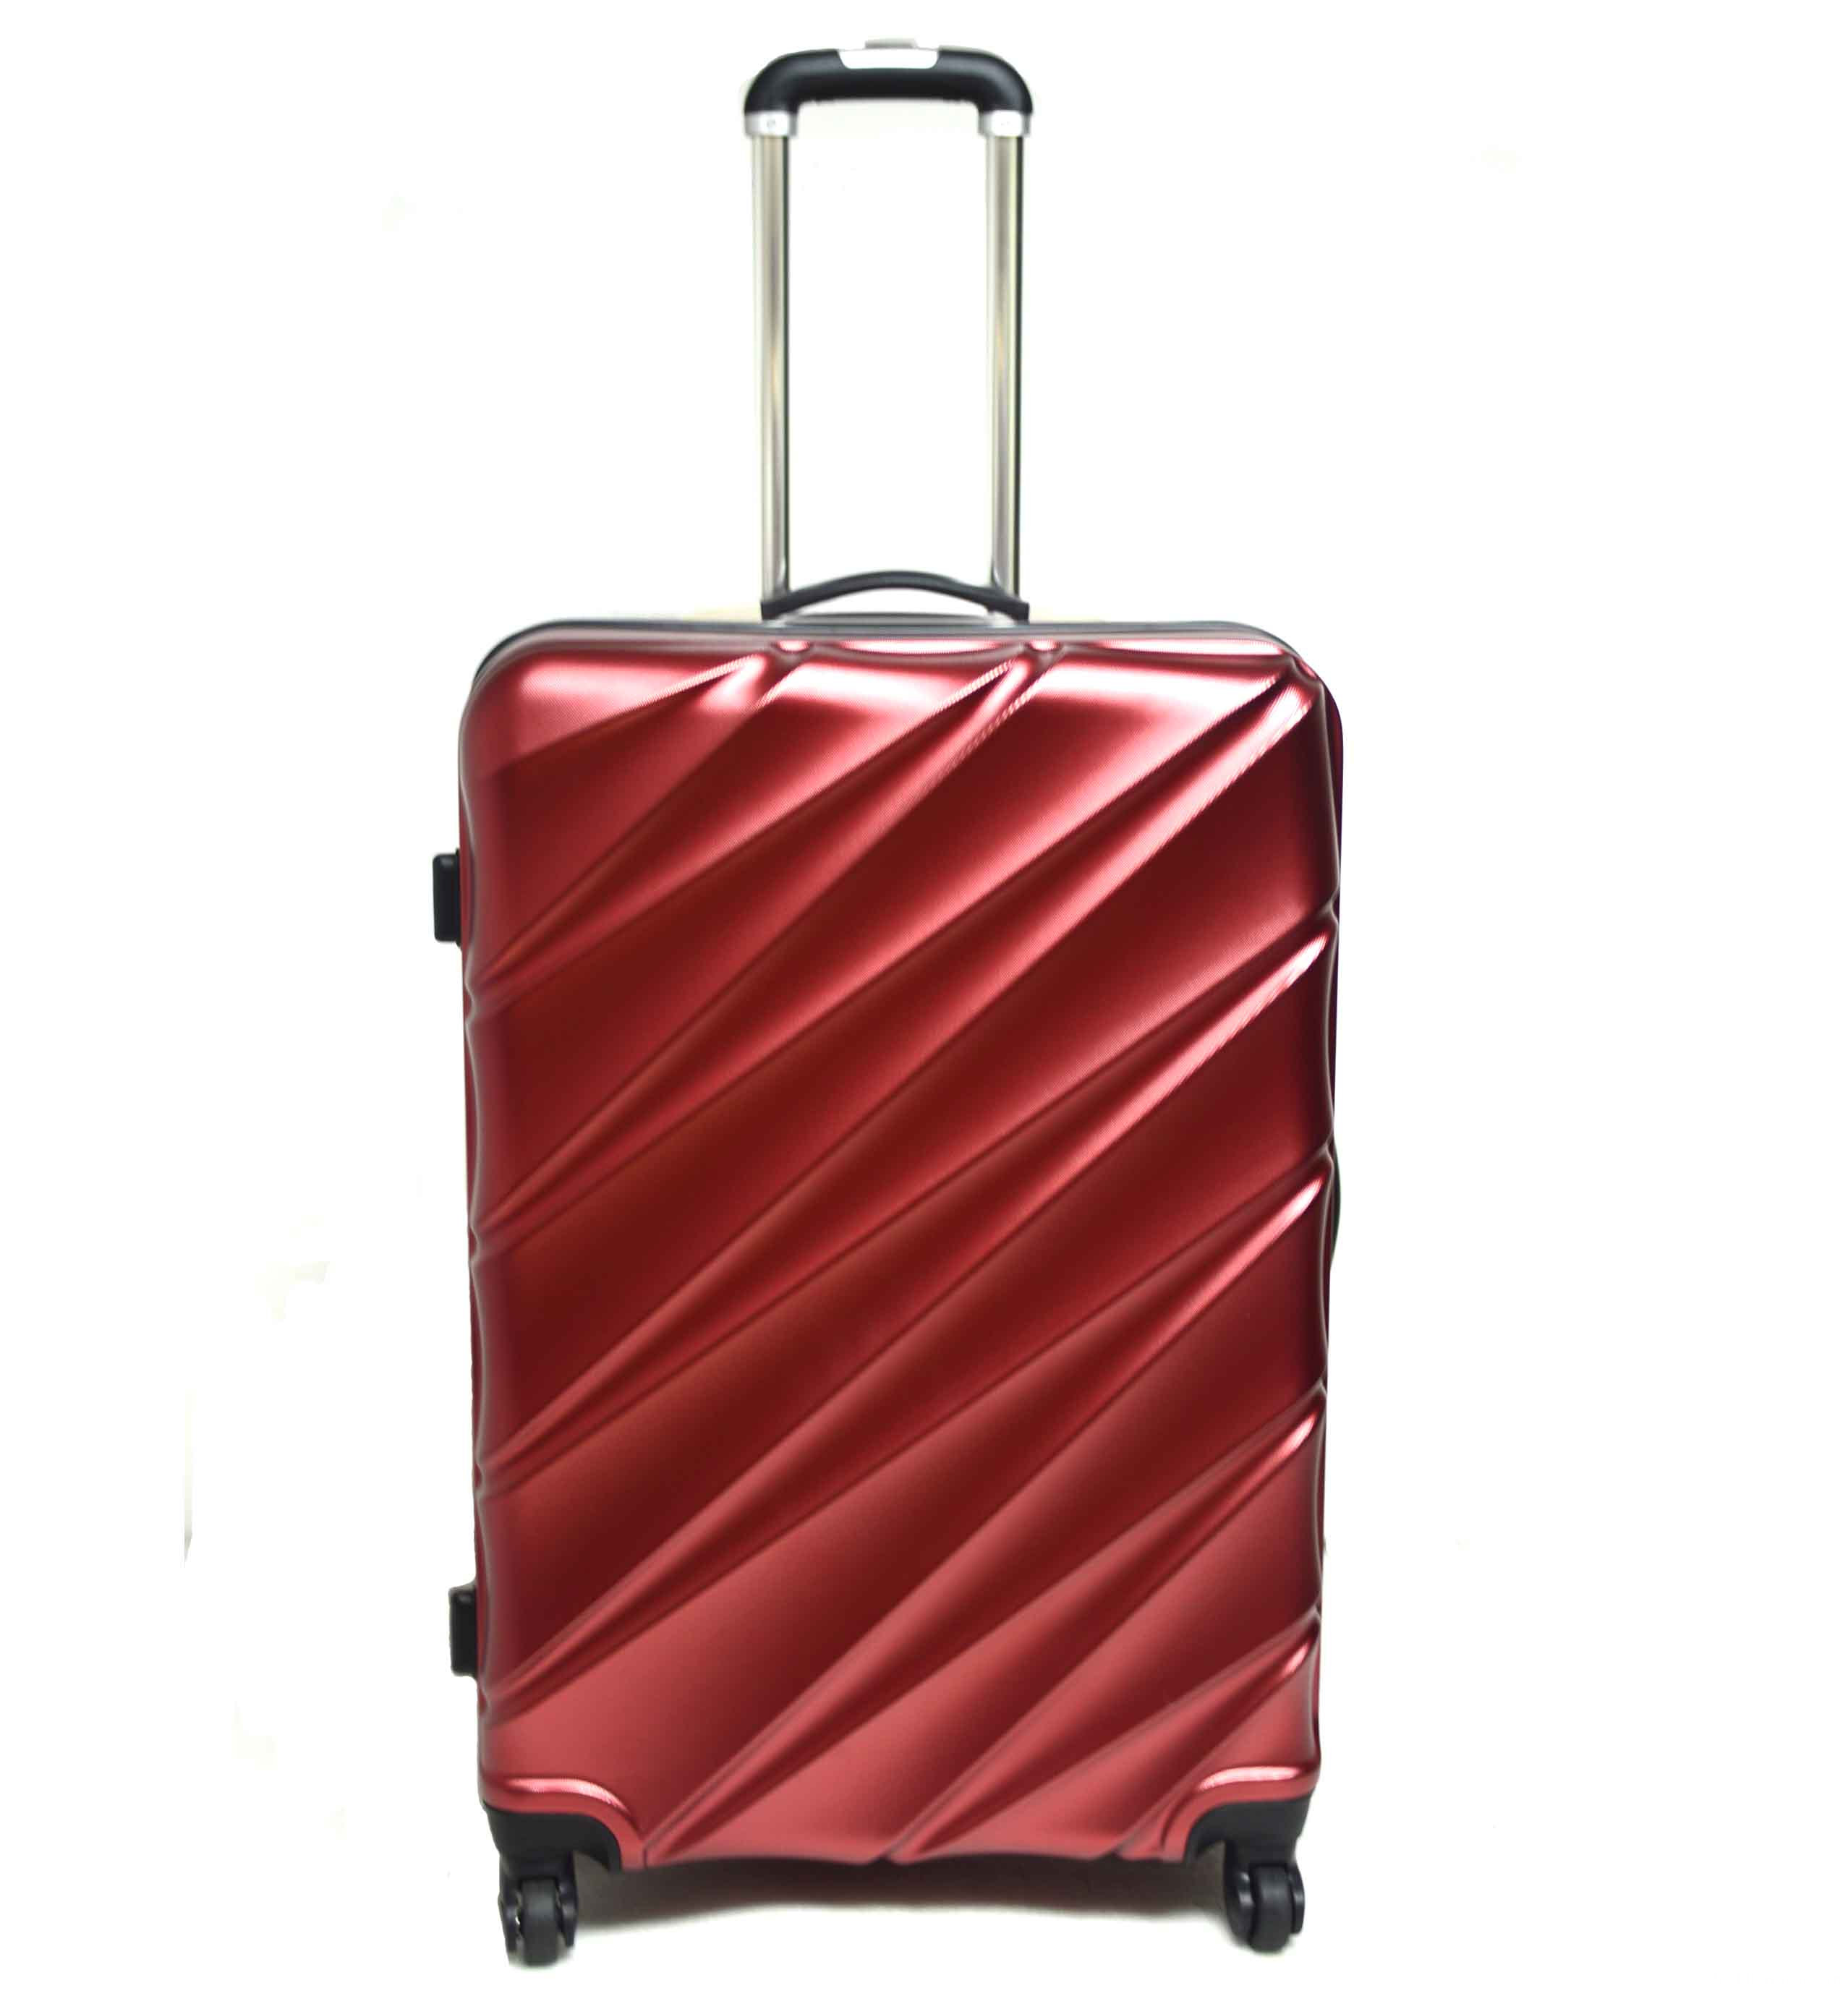 PET trolley case